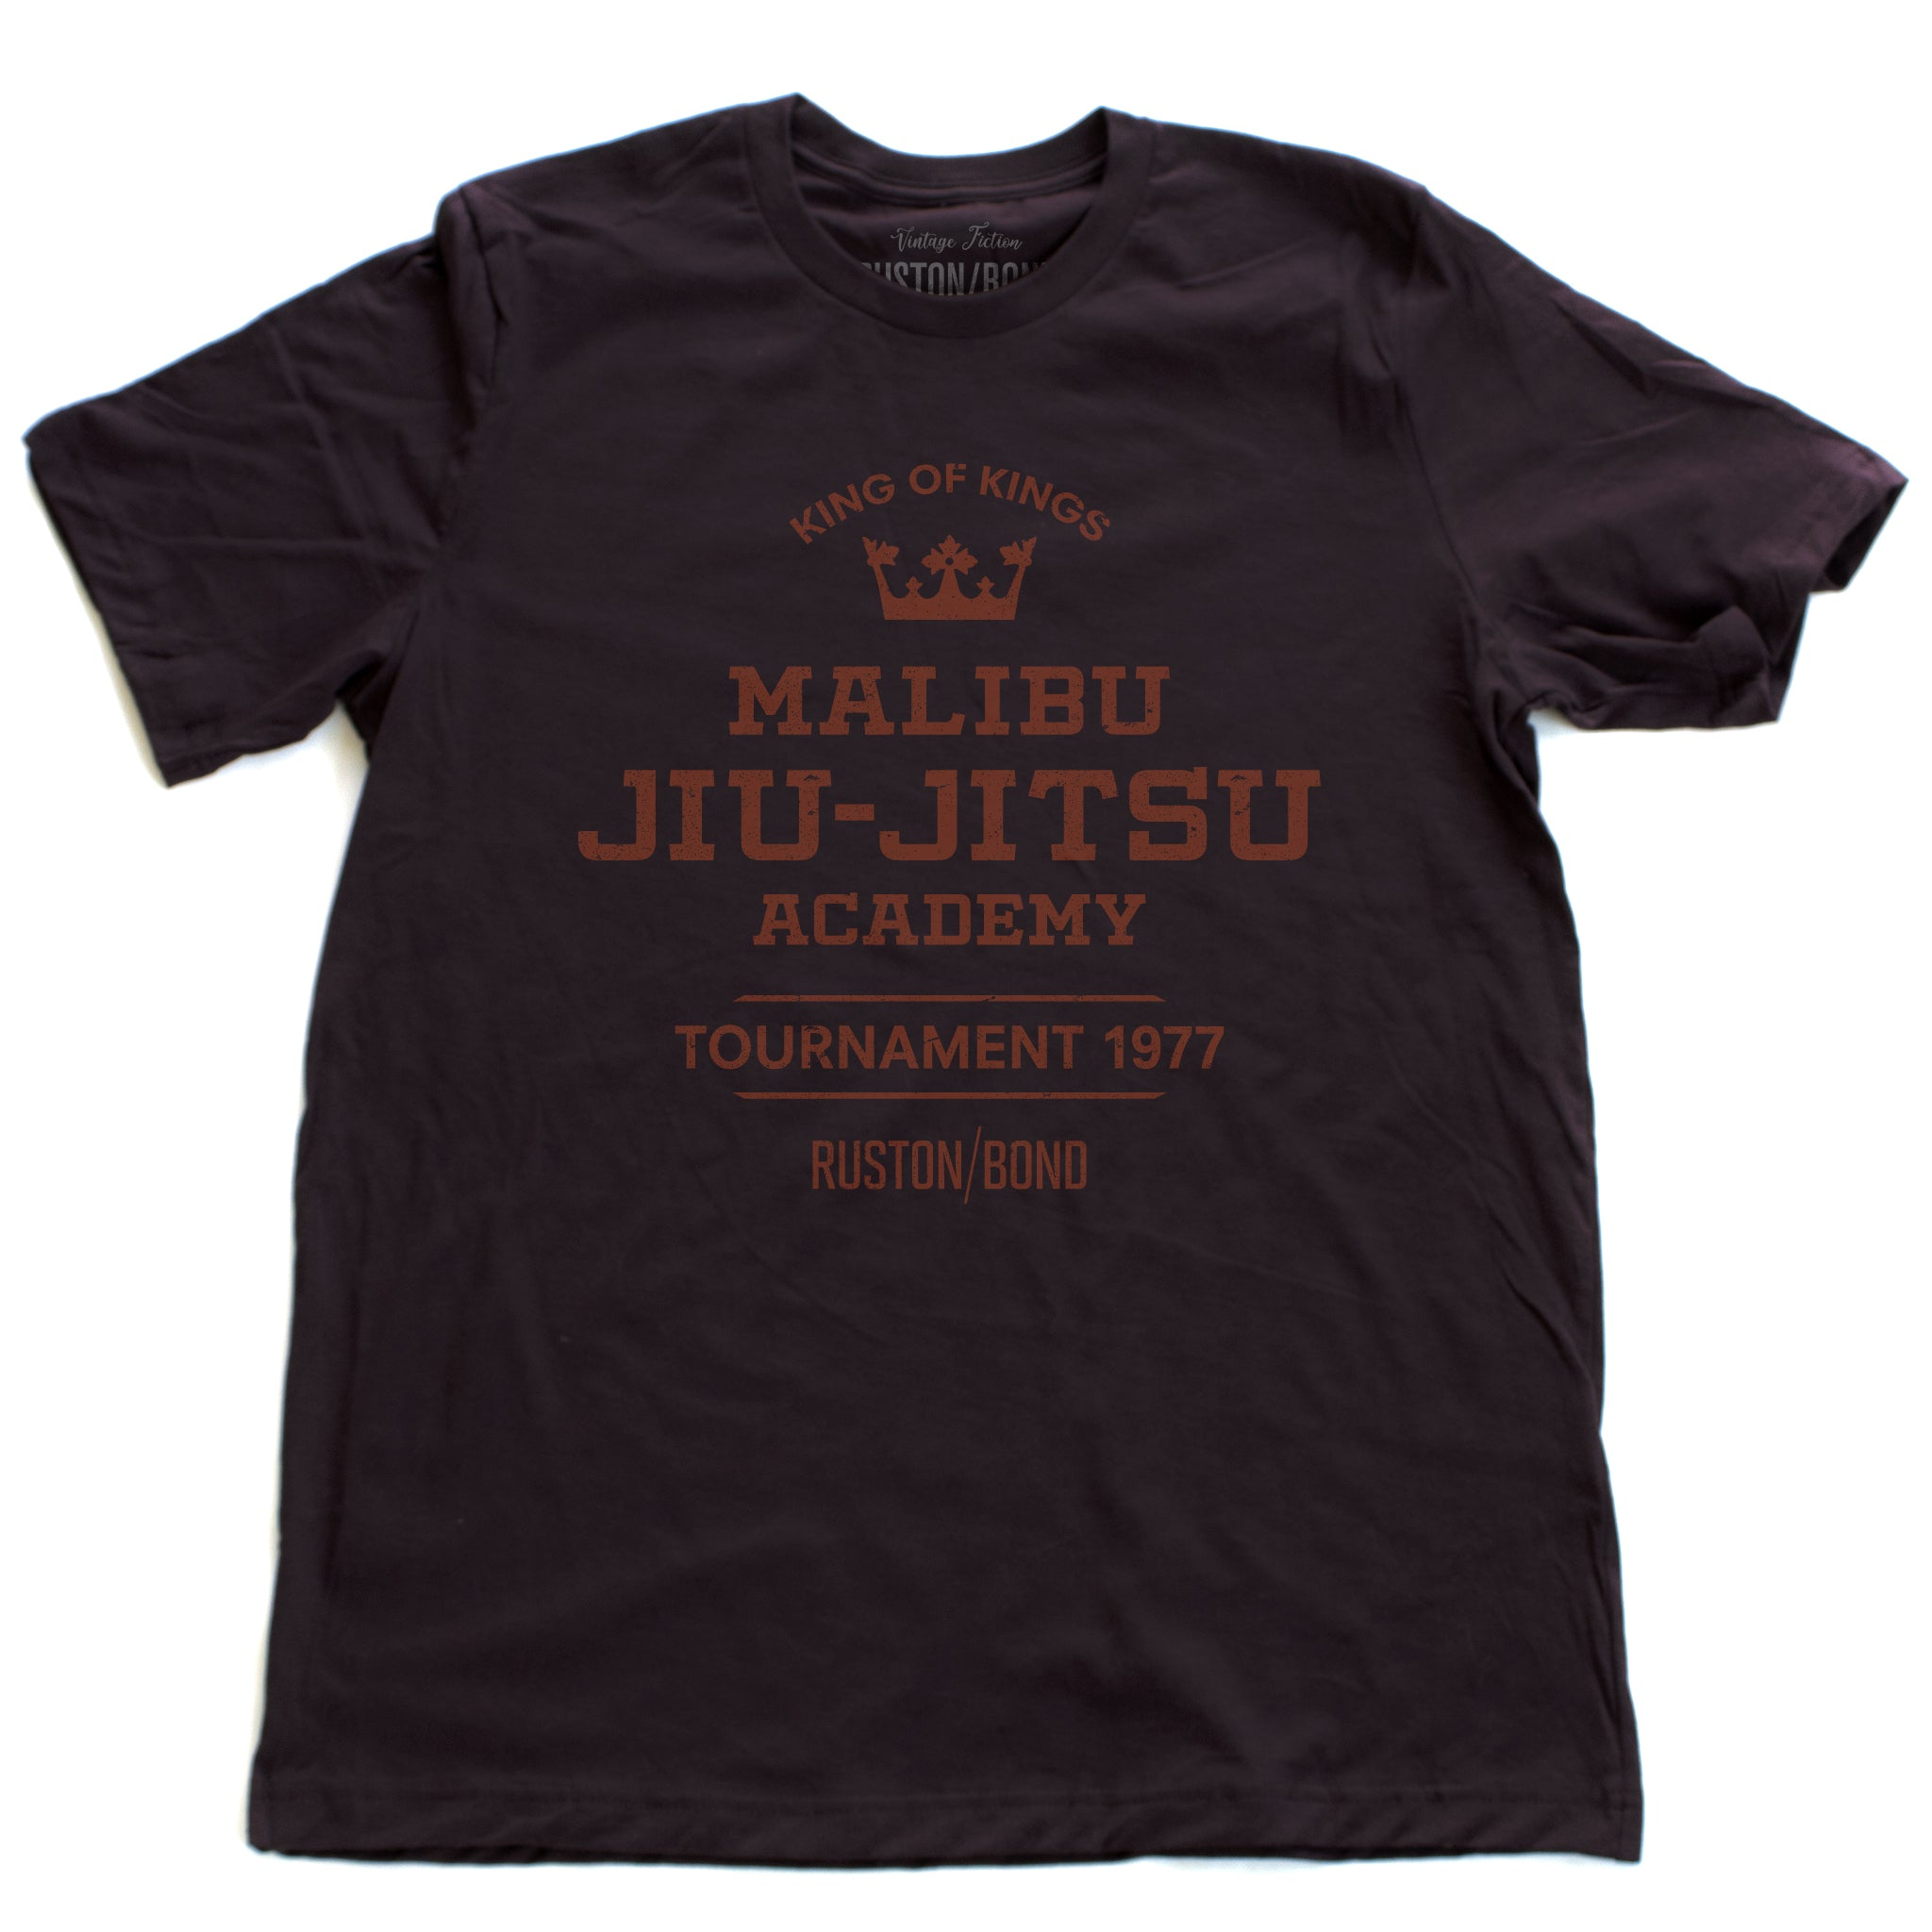 A fashionable, vintage-inspired retro t-shirt in Oxblood, featuring a graphic commemorating a sarcastic and fictitious Malibu (California) Jiu Jitsu academy and a 1977 tournament. By fashion brand Ruston/Bond, from wolfsaint.net